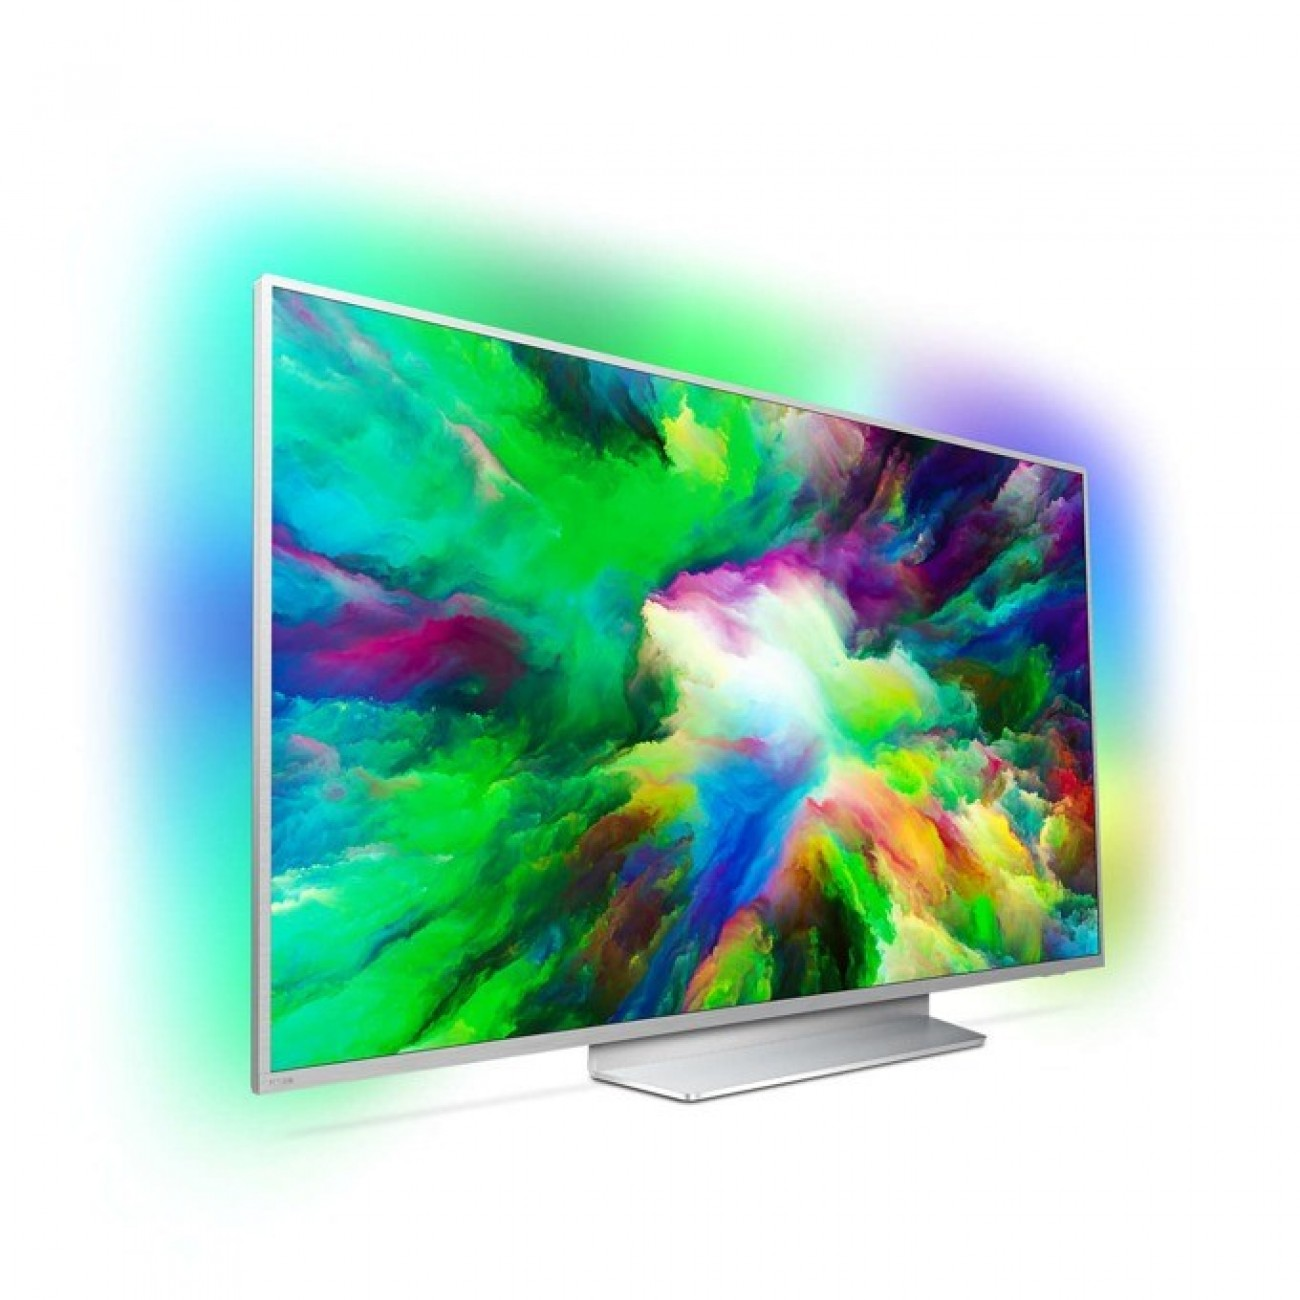 Телевизор Philips 49PUS7803/12, 49 (124.46 cm) 4K Utra HD Smart LED TV, DVB-T/T2/T2-HD/C/S/S2, LAN, Wi-Fi, 4x HDMI, 2x USB, Android в Телевизори -  | Alleop